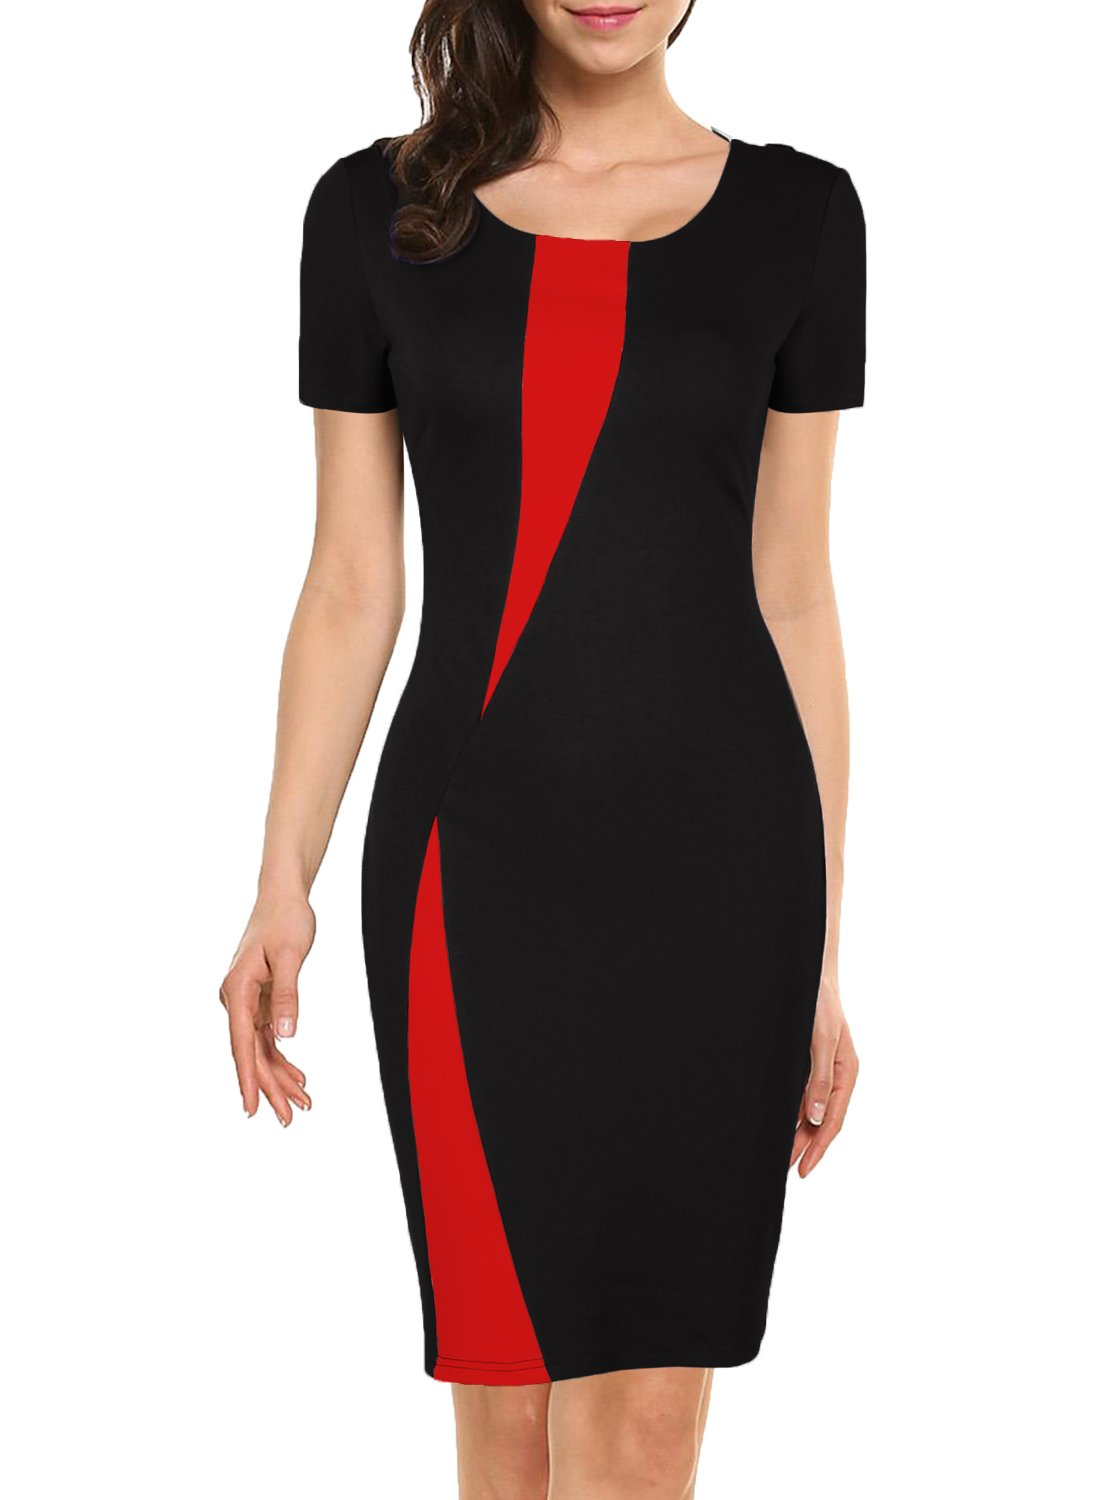 WOOSEA Women's Short Sleeve Colorblock Slim Bodycon Business Pencil Dress (X-Large, Black+Red)